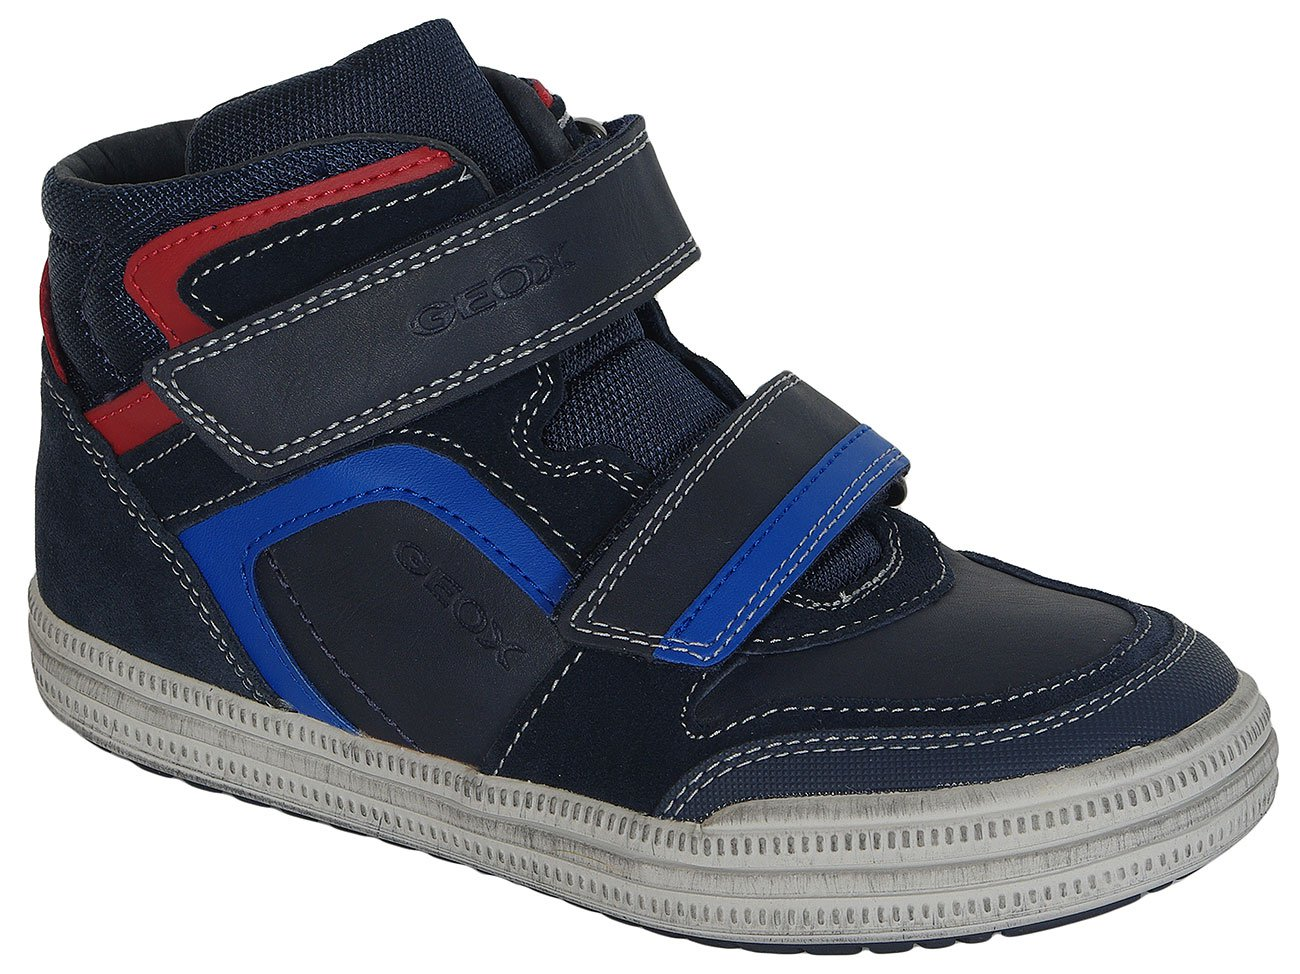 GEOX Elvis H sneakers Geobuck+Suede Navy/Royal